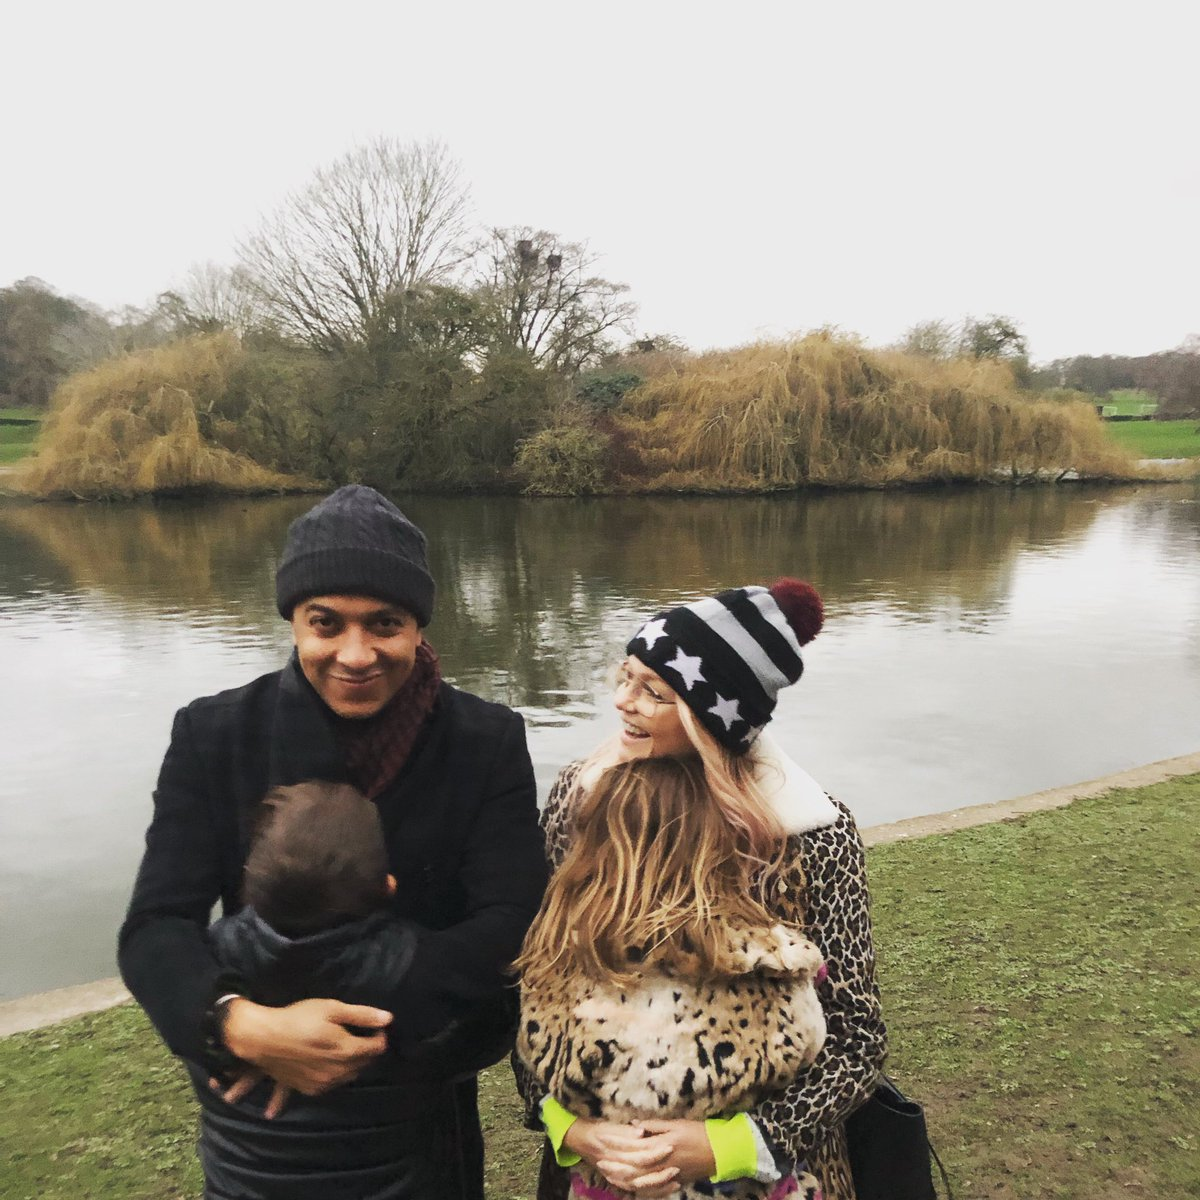 Our New Year's Day tradition #walkinthepark  Happy New Year from us! ???? https://t.co/rFpw7H70P3